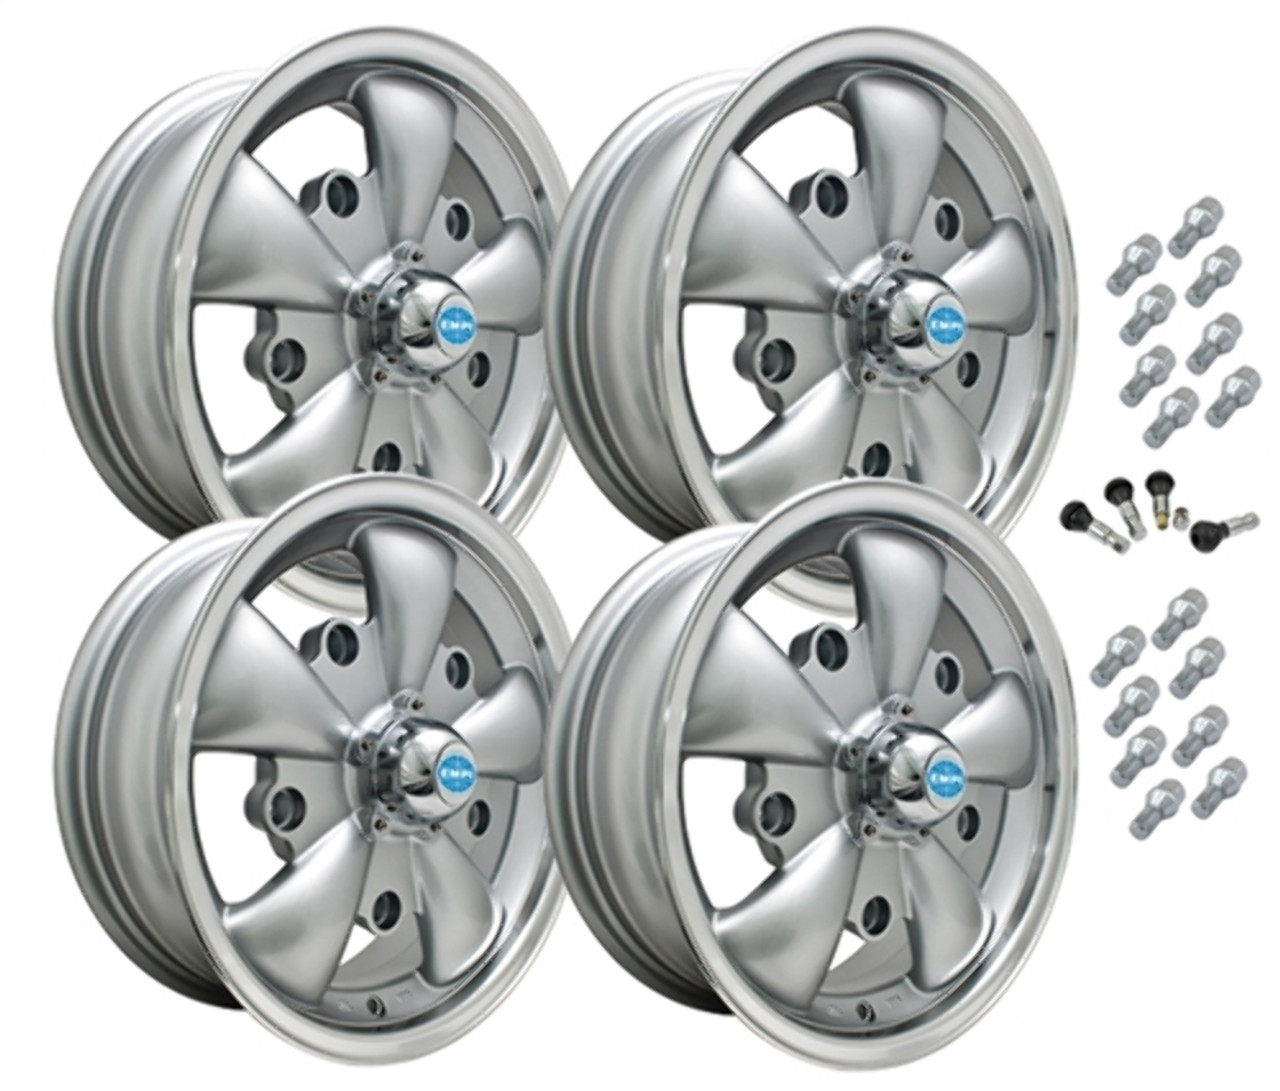 9691 EMPI GT-5 STYLE WHEEL PACKAGE, 5-LUG VW BUG, BUS, GHIA, TYPE 3,  4PC SET, SILVER, 15 X 5-1/2, 5 ON 205MM